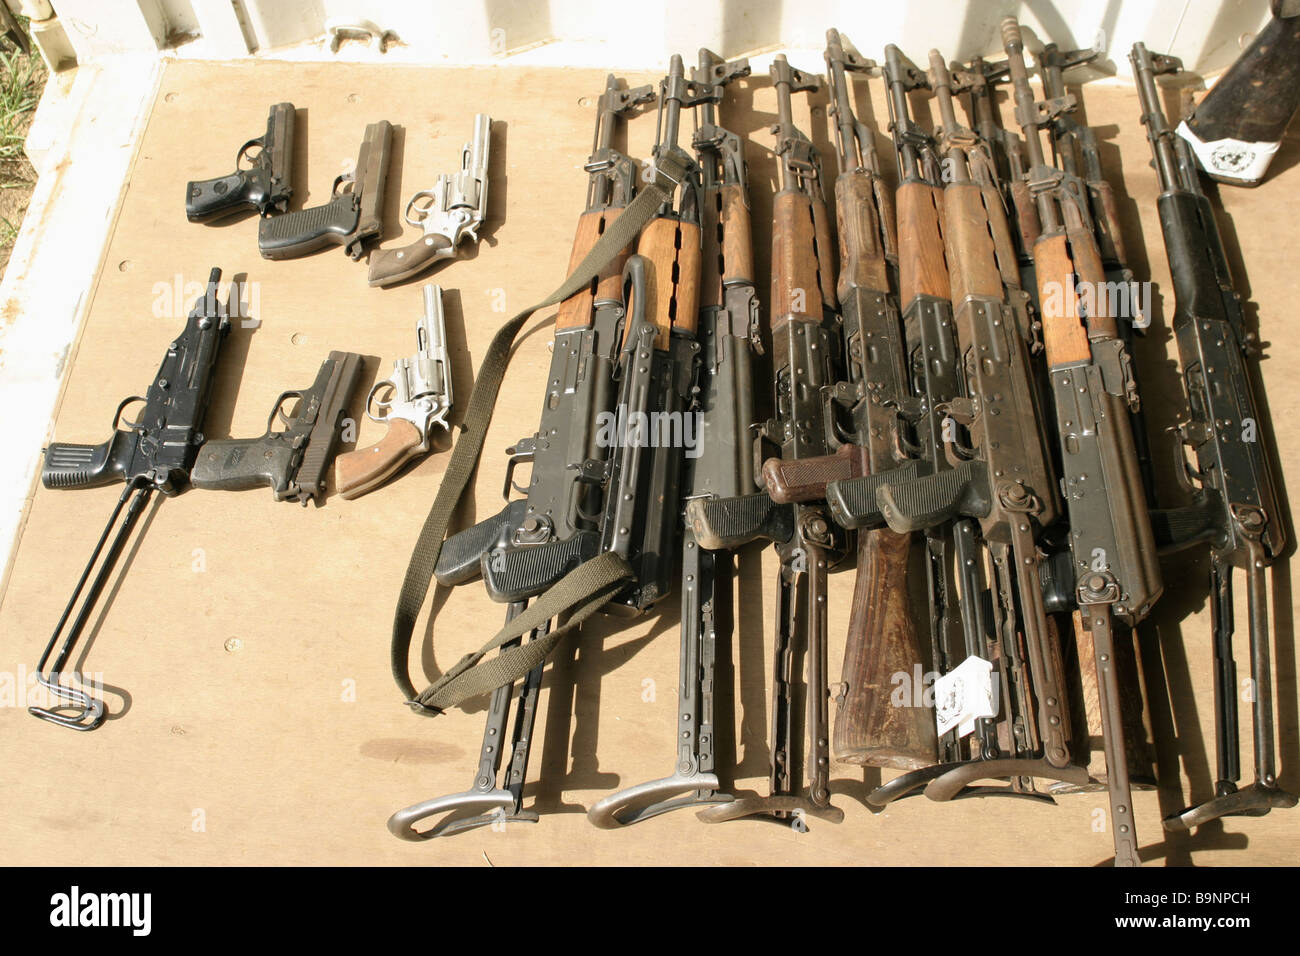 A collection of weapons is held by the UN at Monrovia in Liberia, West Africa. - Stock Image